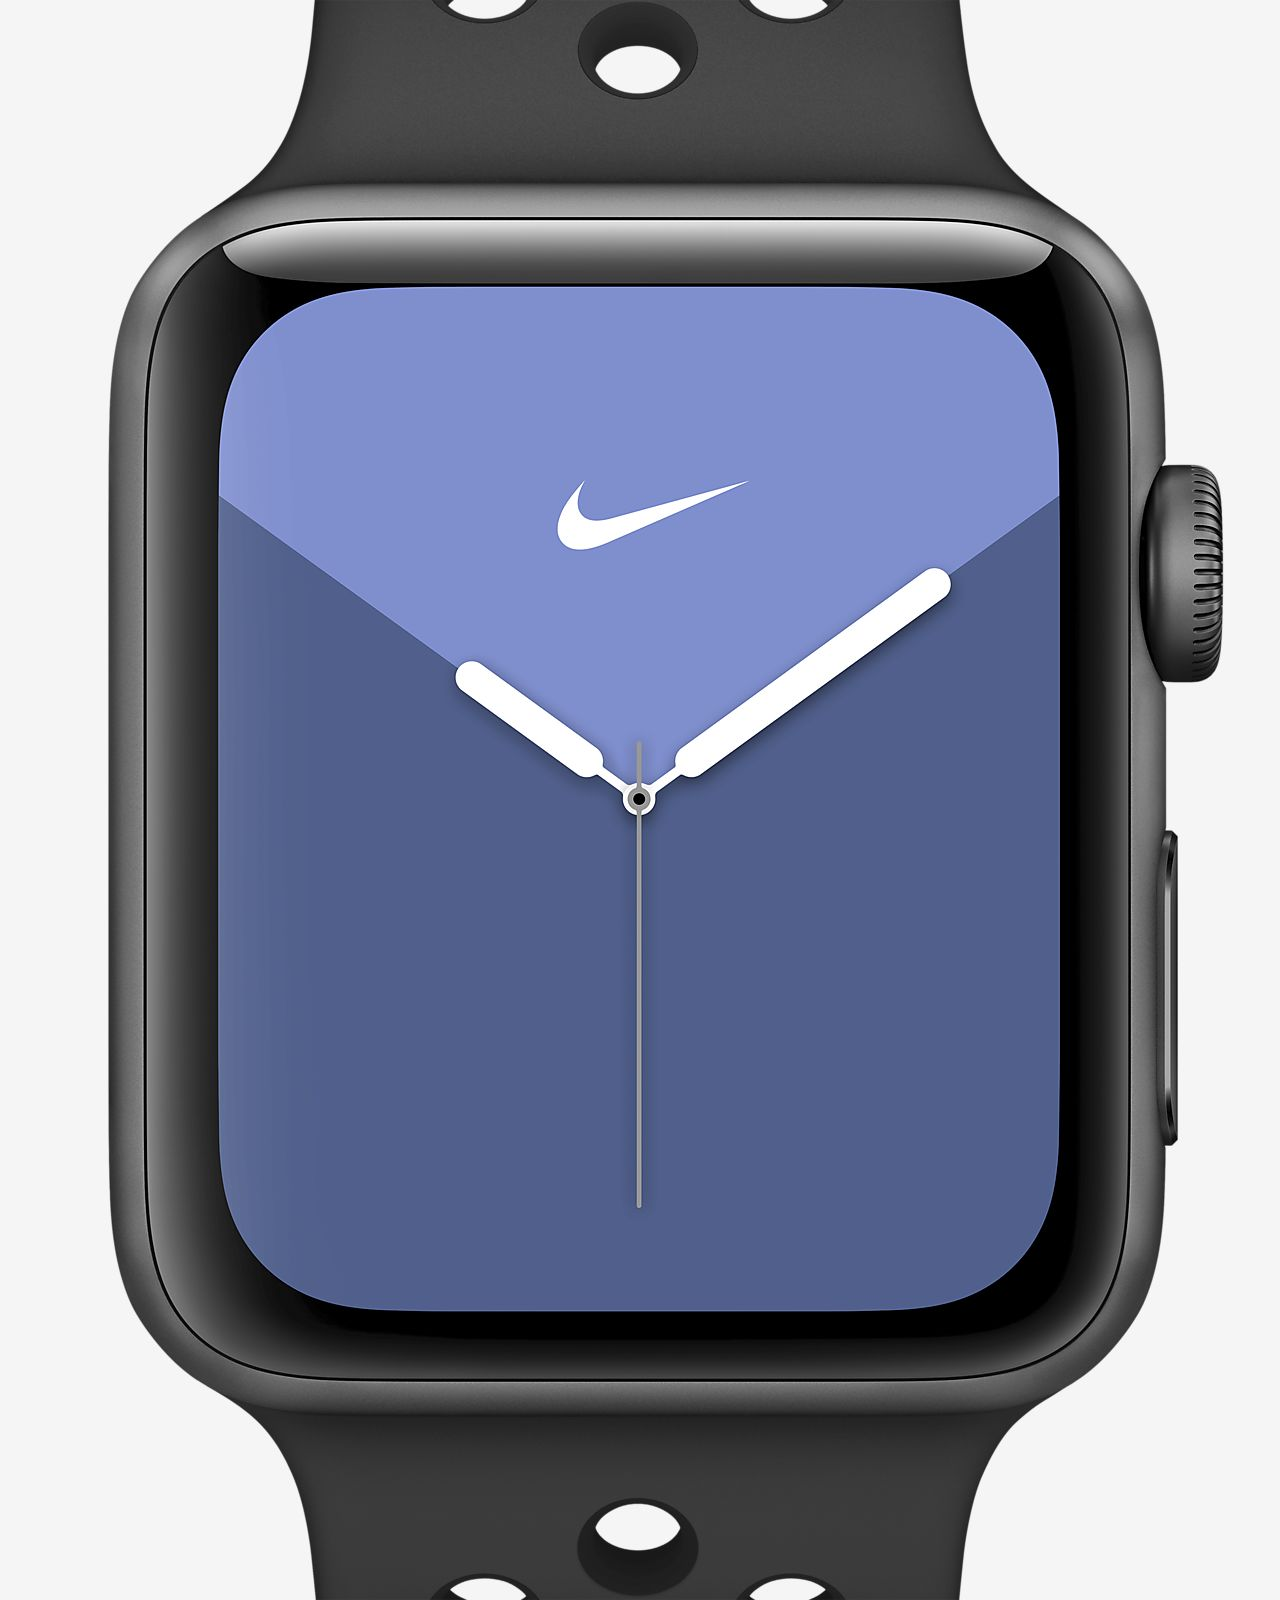 Apple Running 3gpsCellularReloj Mm Watch NikeSeries 42 De OkwP8n0